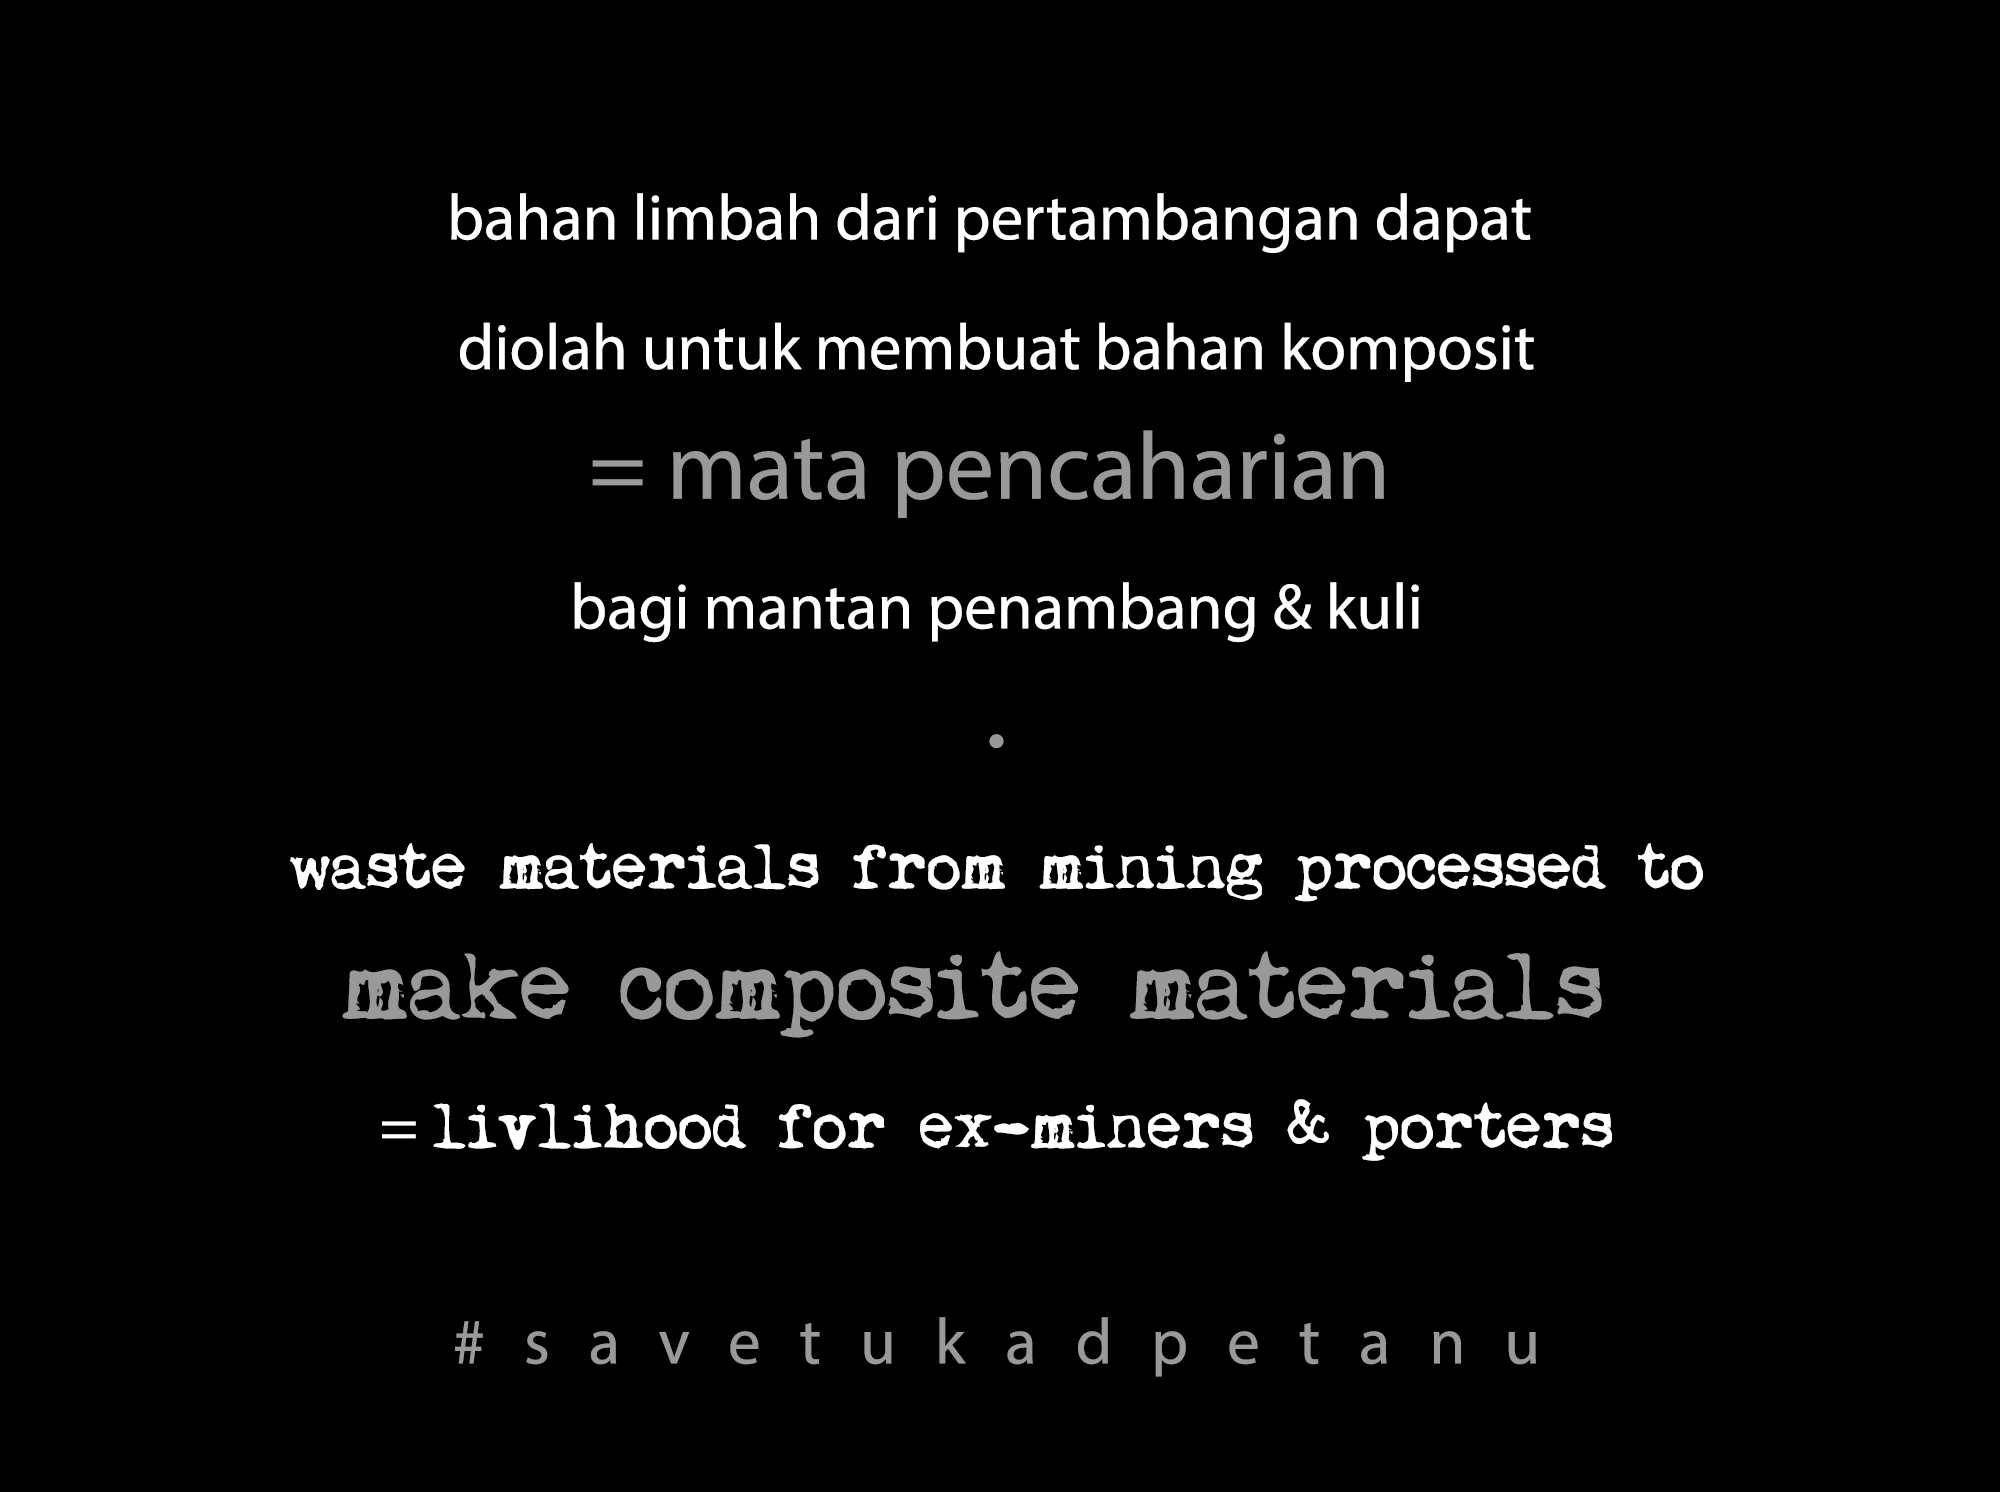 process waste #savetukadpetanu